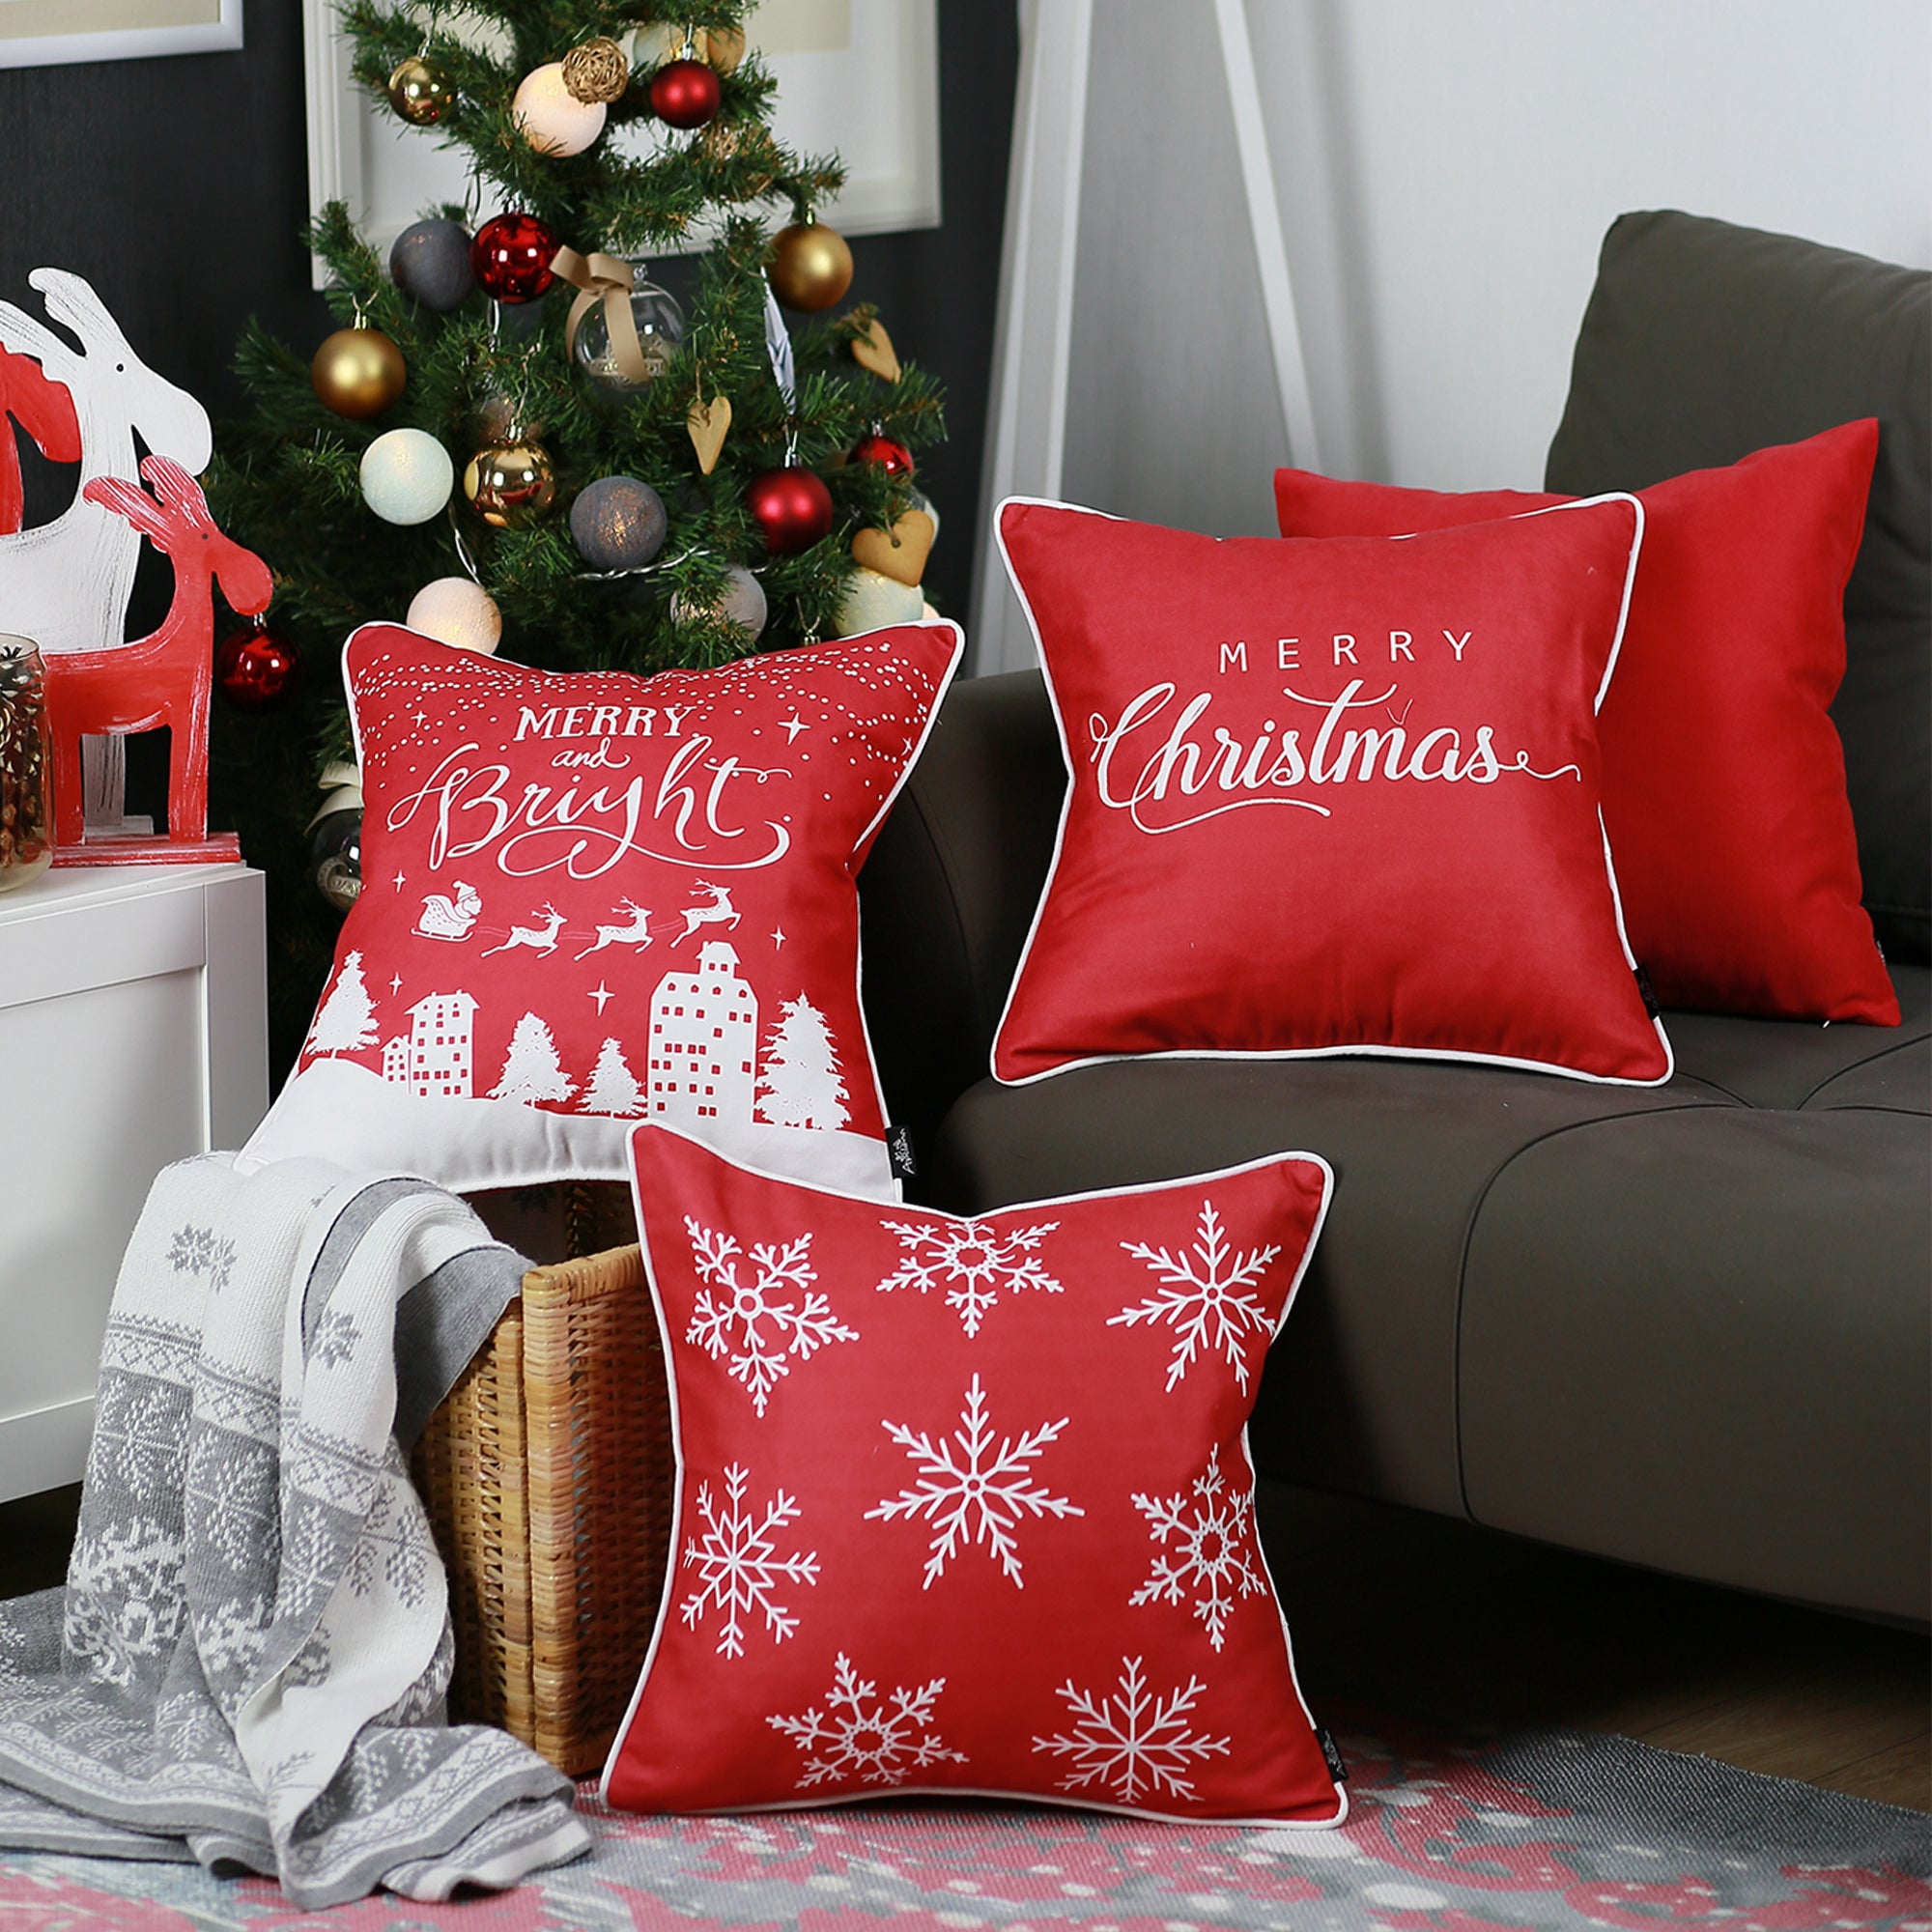 Merry Christmas Gift.Merry Christmas Set Of 4 Throw Pillow Covers Christmas Gifts 18 X18